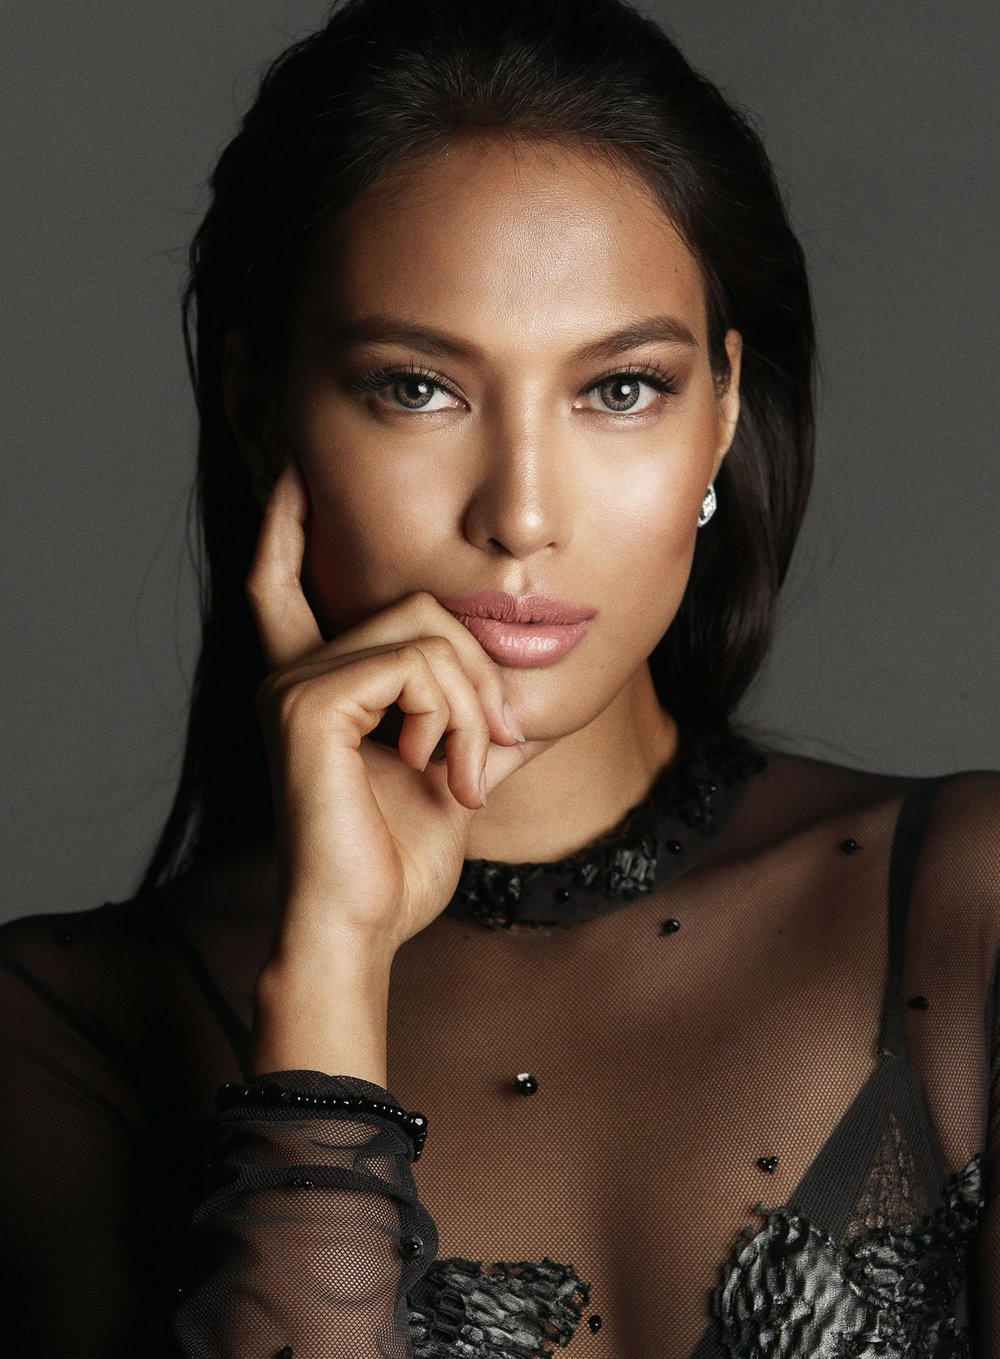 Photographed by Mark Nicdao / Styled by MJ Benitez